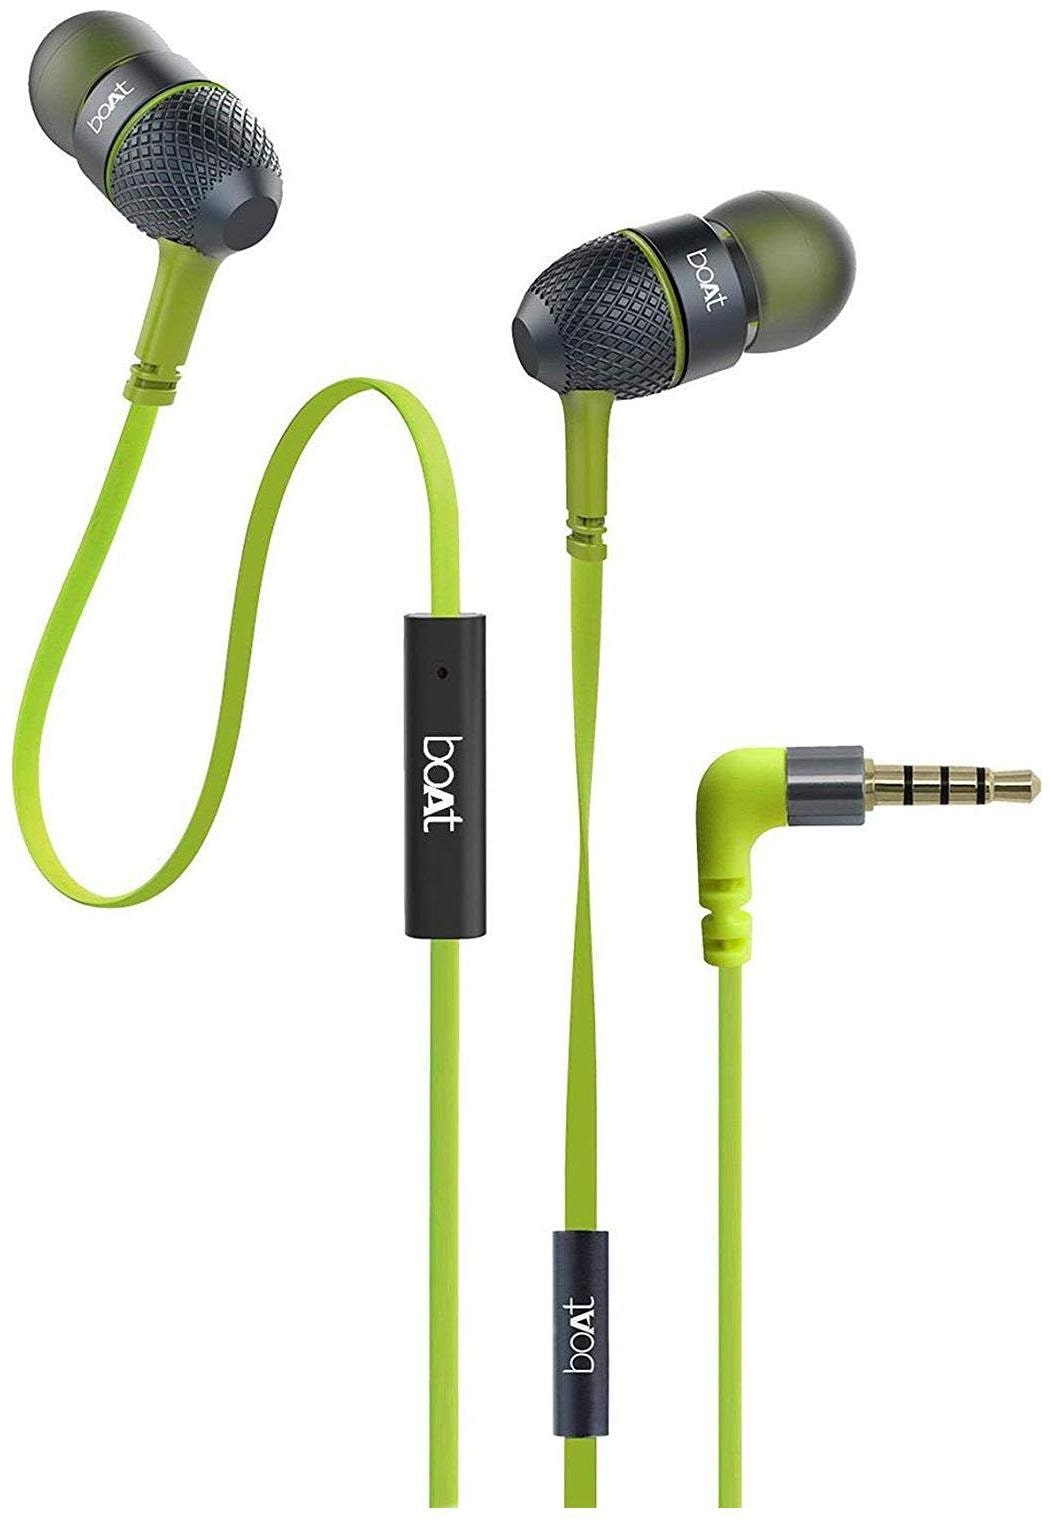 boAt Bassheads 220 Super Extra bass with Mic In Ear Wired Headphone   Green